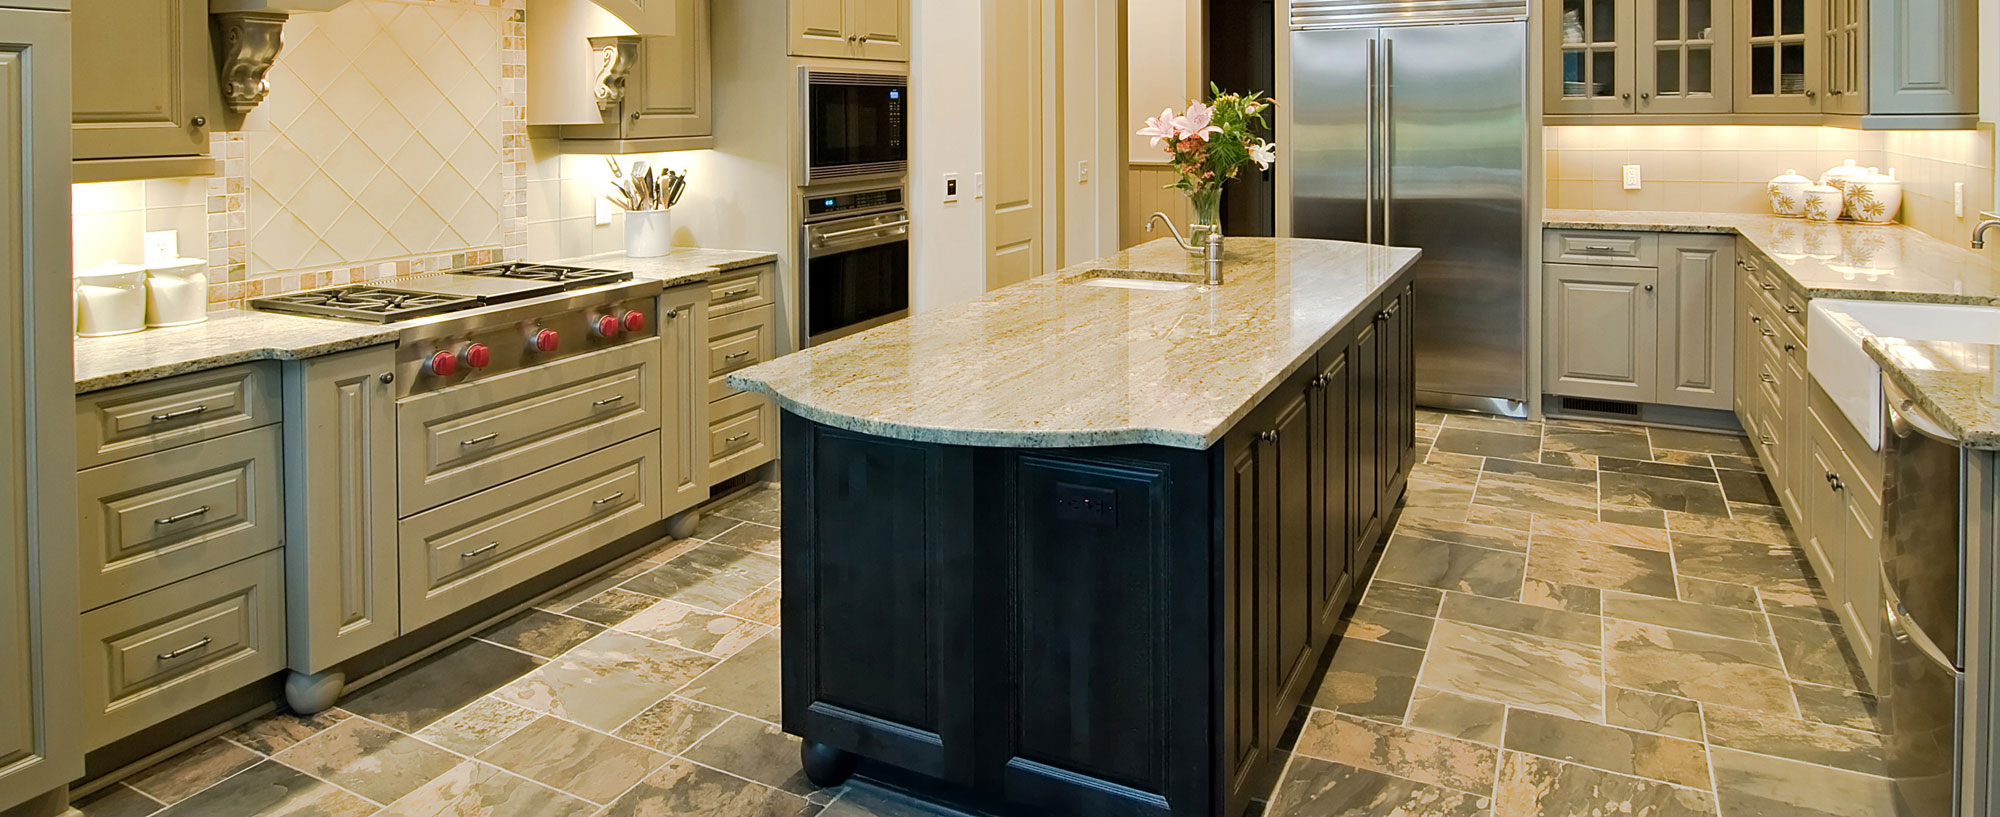 custom kitchen remodeling Los Angeles